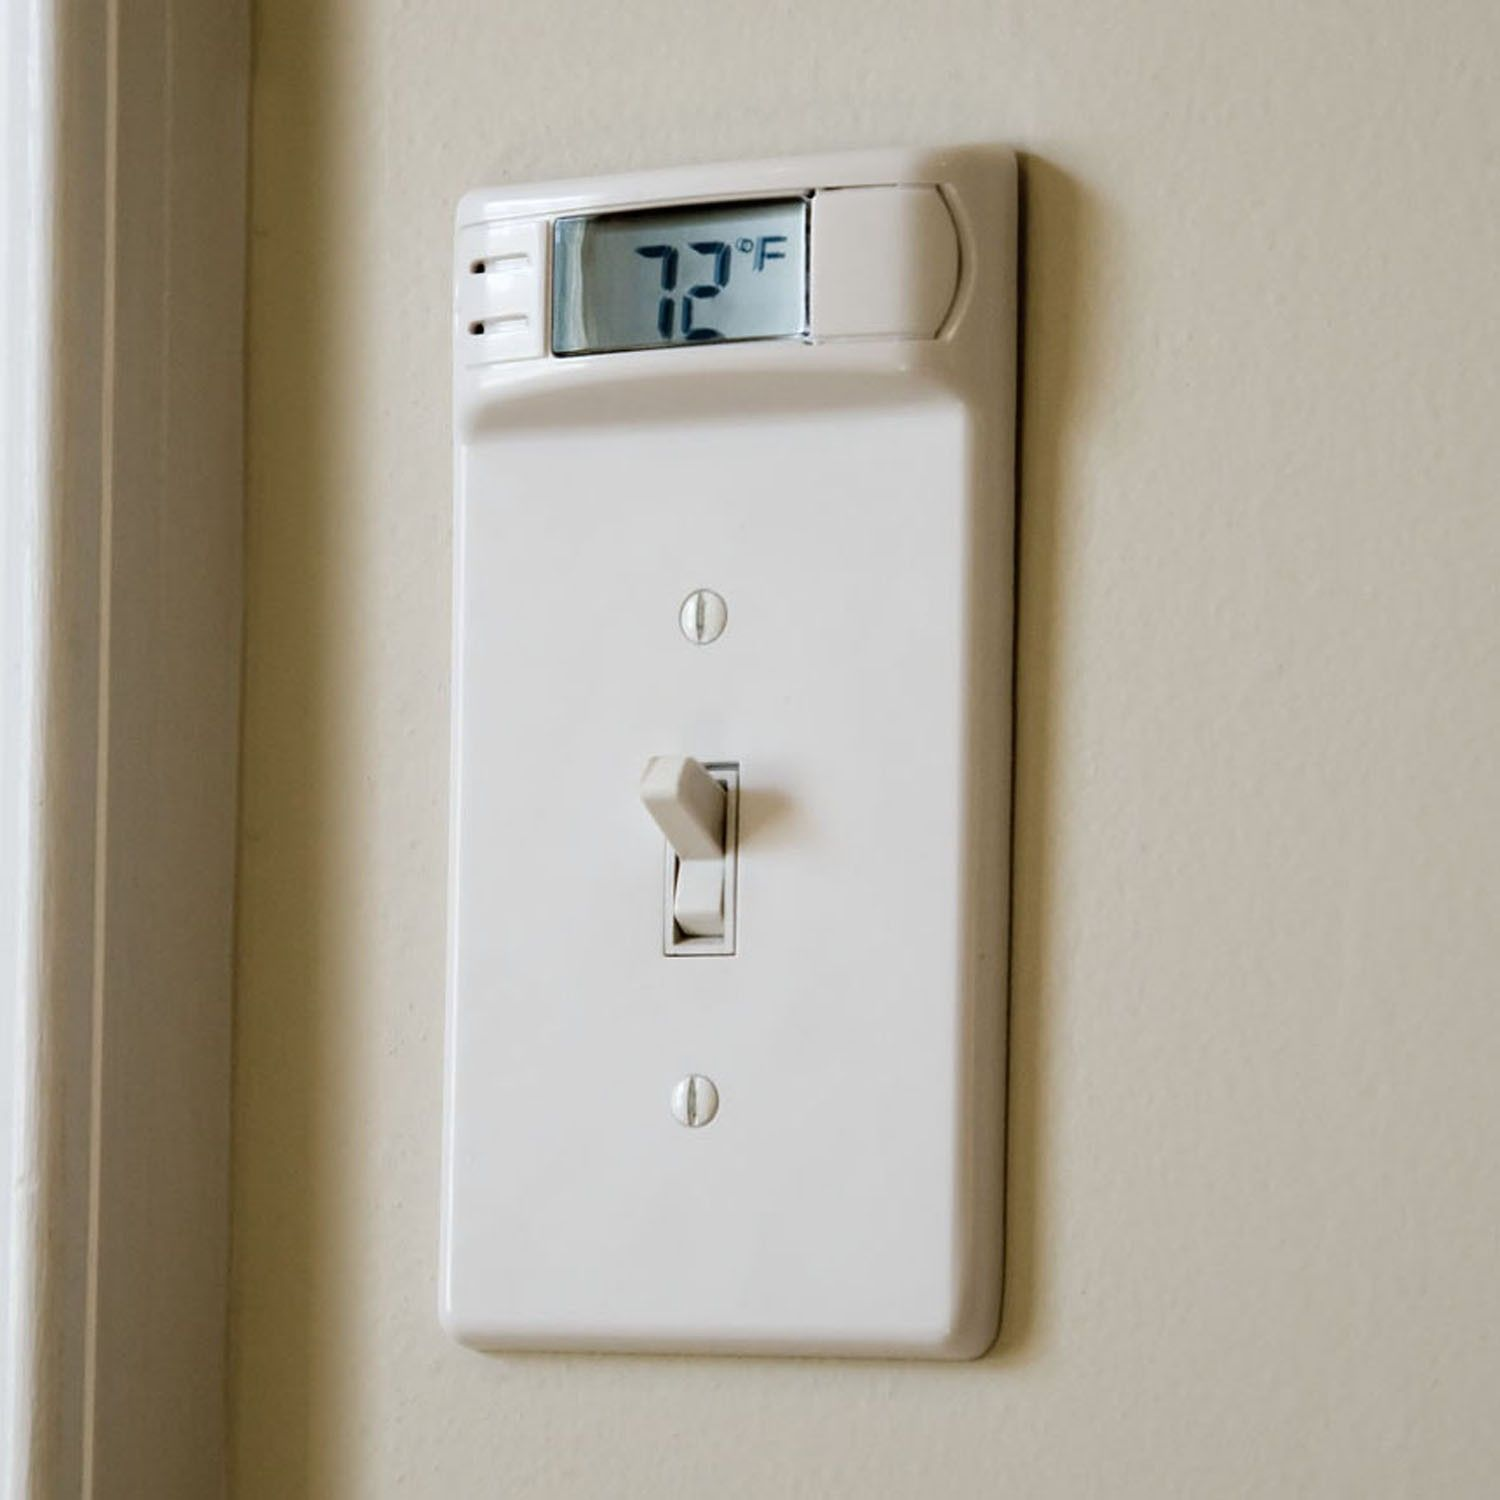 Plate Pals® - Ever felt hot or cold and wondered if it was you or the room? Better-balanced heating and air conditioning from room to room with added comfort, while allowing for energy conservation, with the help of PlatePals®. PlatePals® Wall Plate Thermometers readily replace existing wall plates, install in minutes, and need no wiring. LCD display accurately displays temperatures to within 1°F. UL approved, and an easy access battery is included.  May be personalized with corporate name…